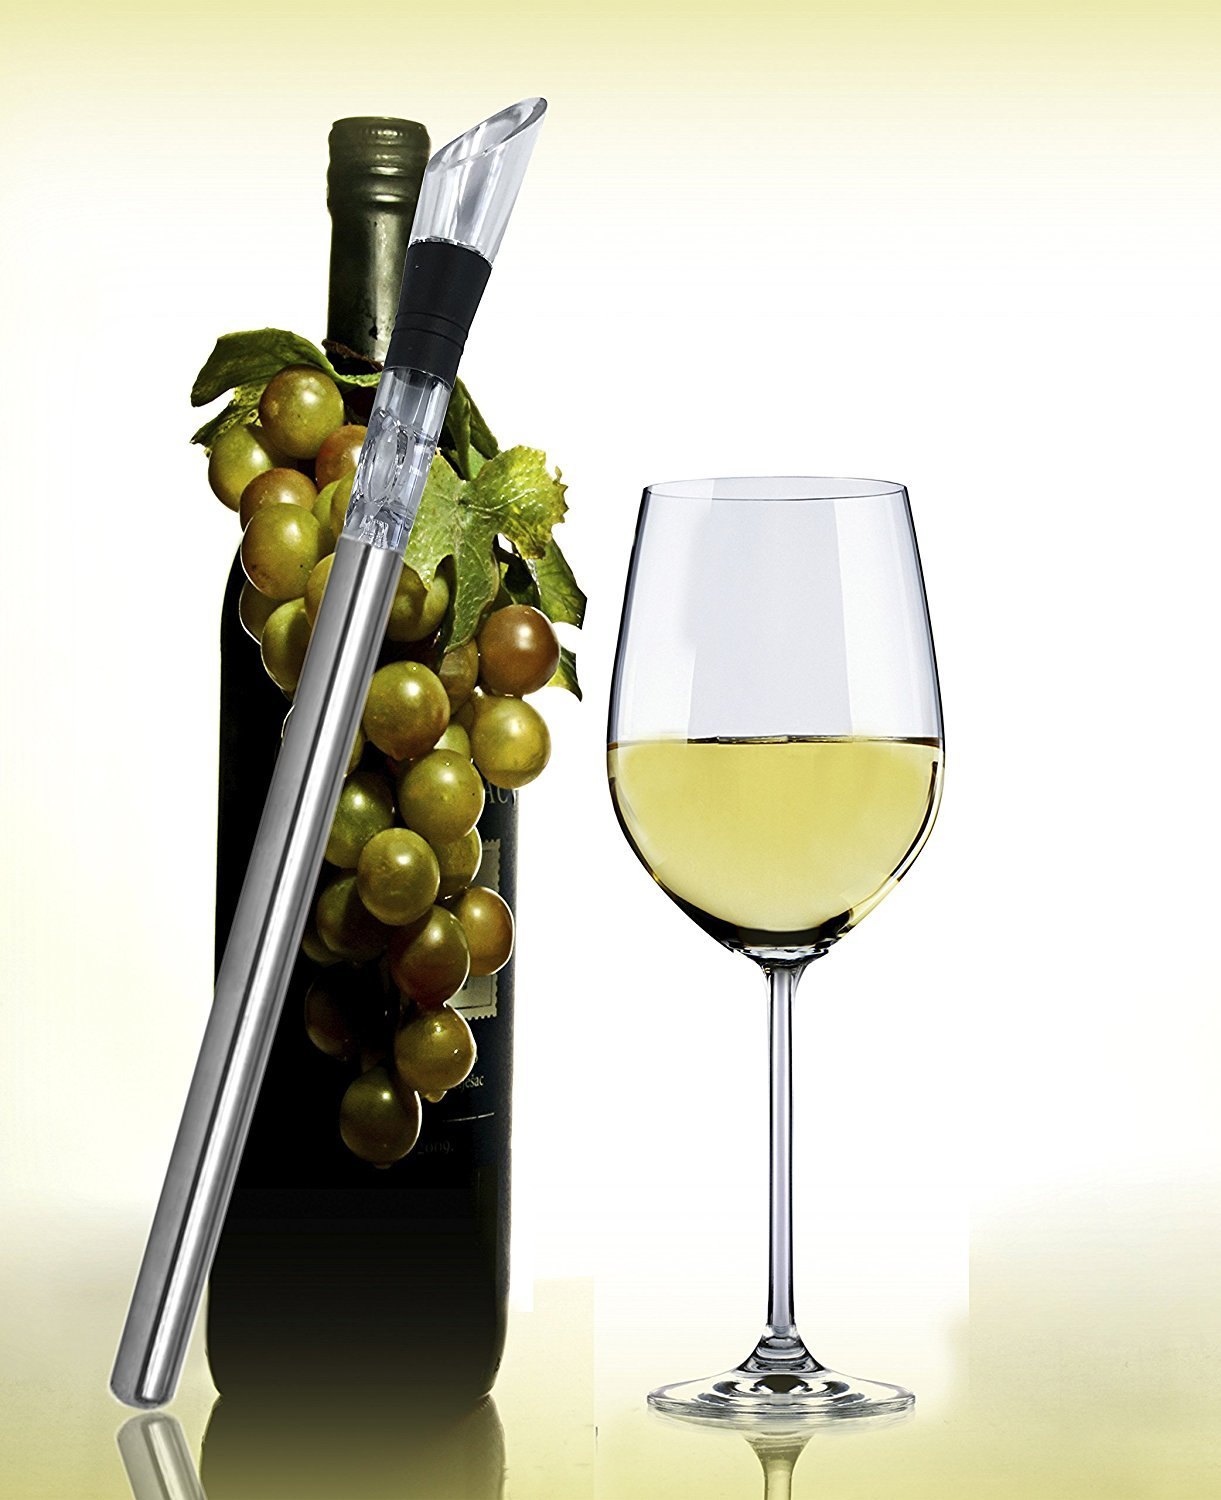 Wine Decanter Red Wine Carafe,Wine aerator,Wine Accessories-Wine Chiller Stick by NEW PACIFIC YOUYAH (Image #5)